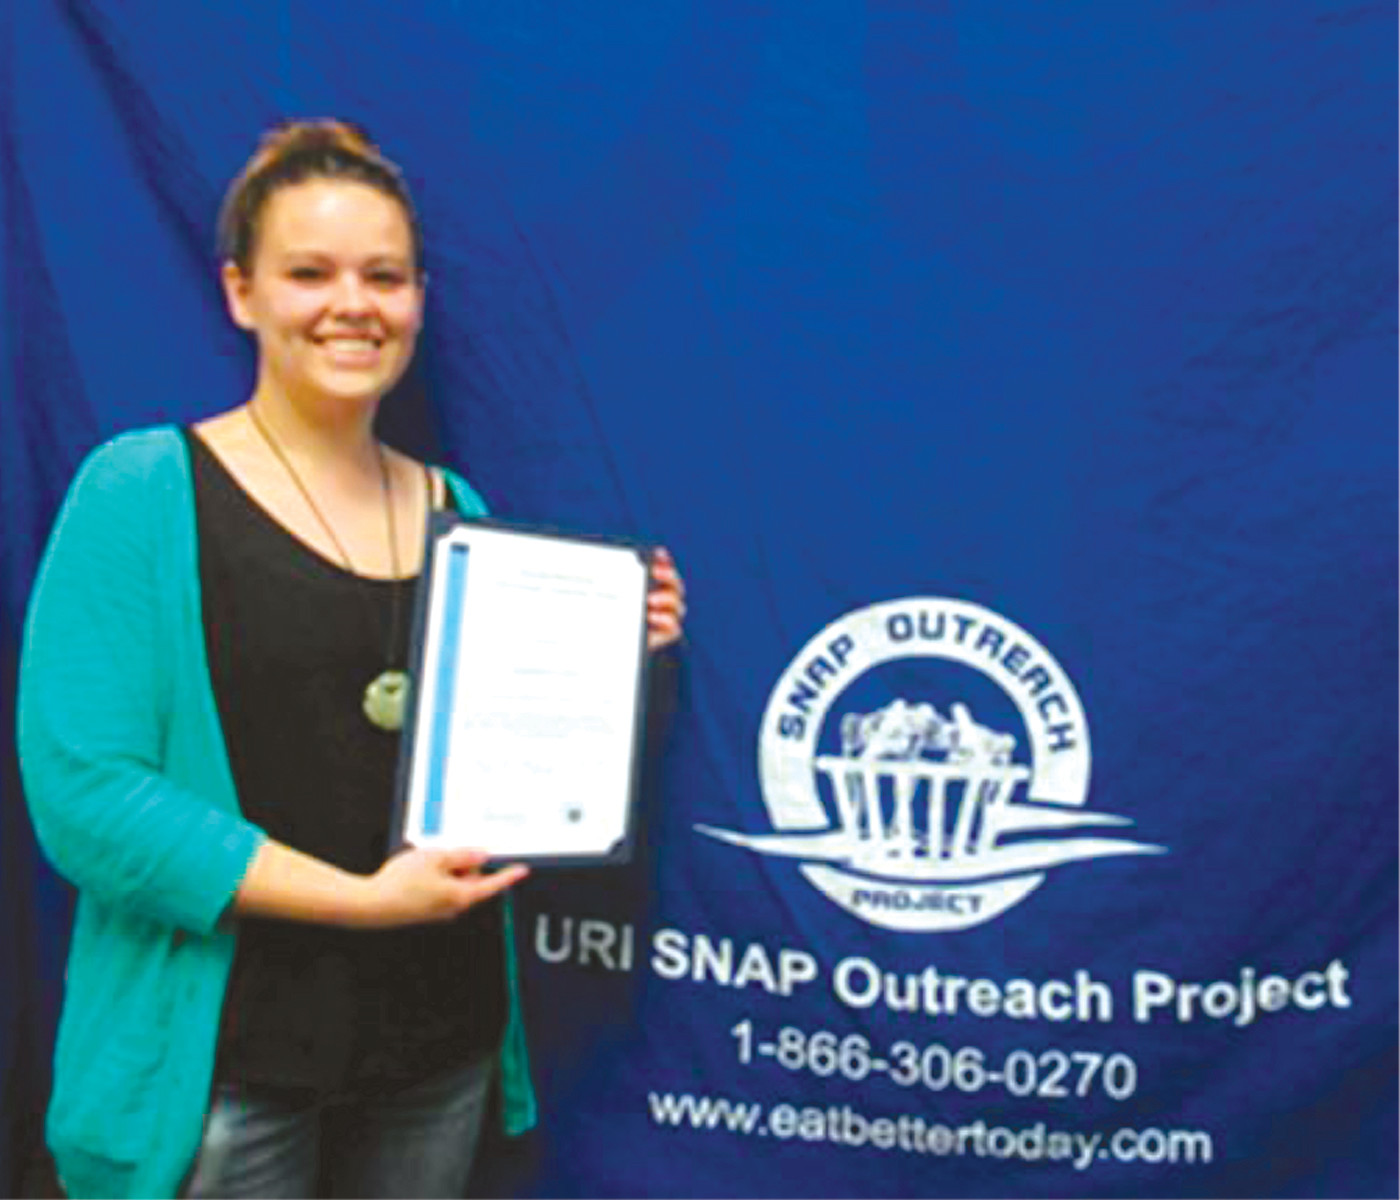 AWARD WINNER: Stephanie Bush was the winner of the 2016 Dorothy Shackleton Anti-Hunger Leadership Award from the URI Feinstein Center for a Hunger Free America. She is a 2016 graduate of URI and will be participating in an internship program with Keene State College this fall.